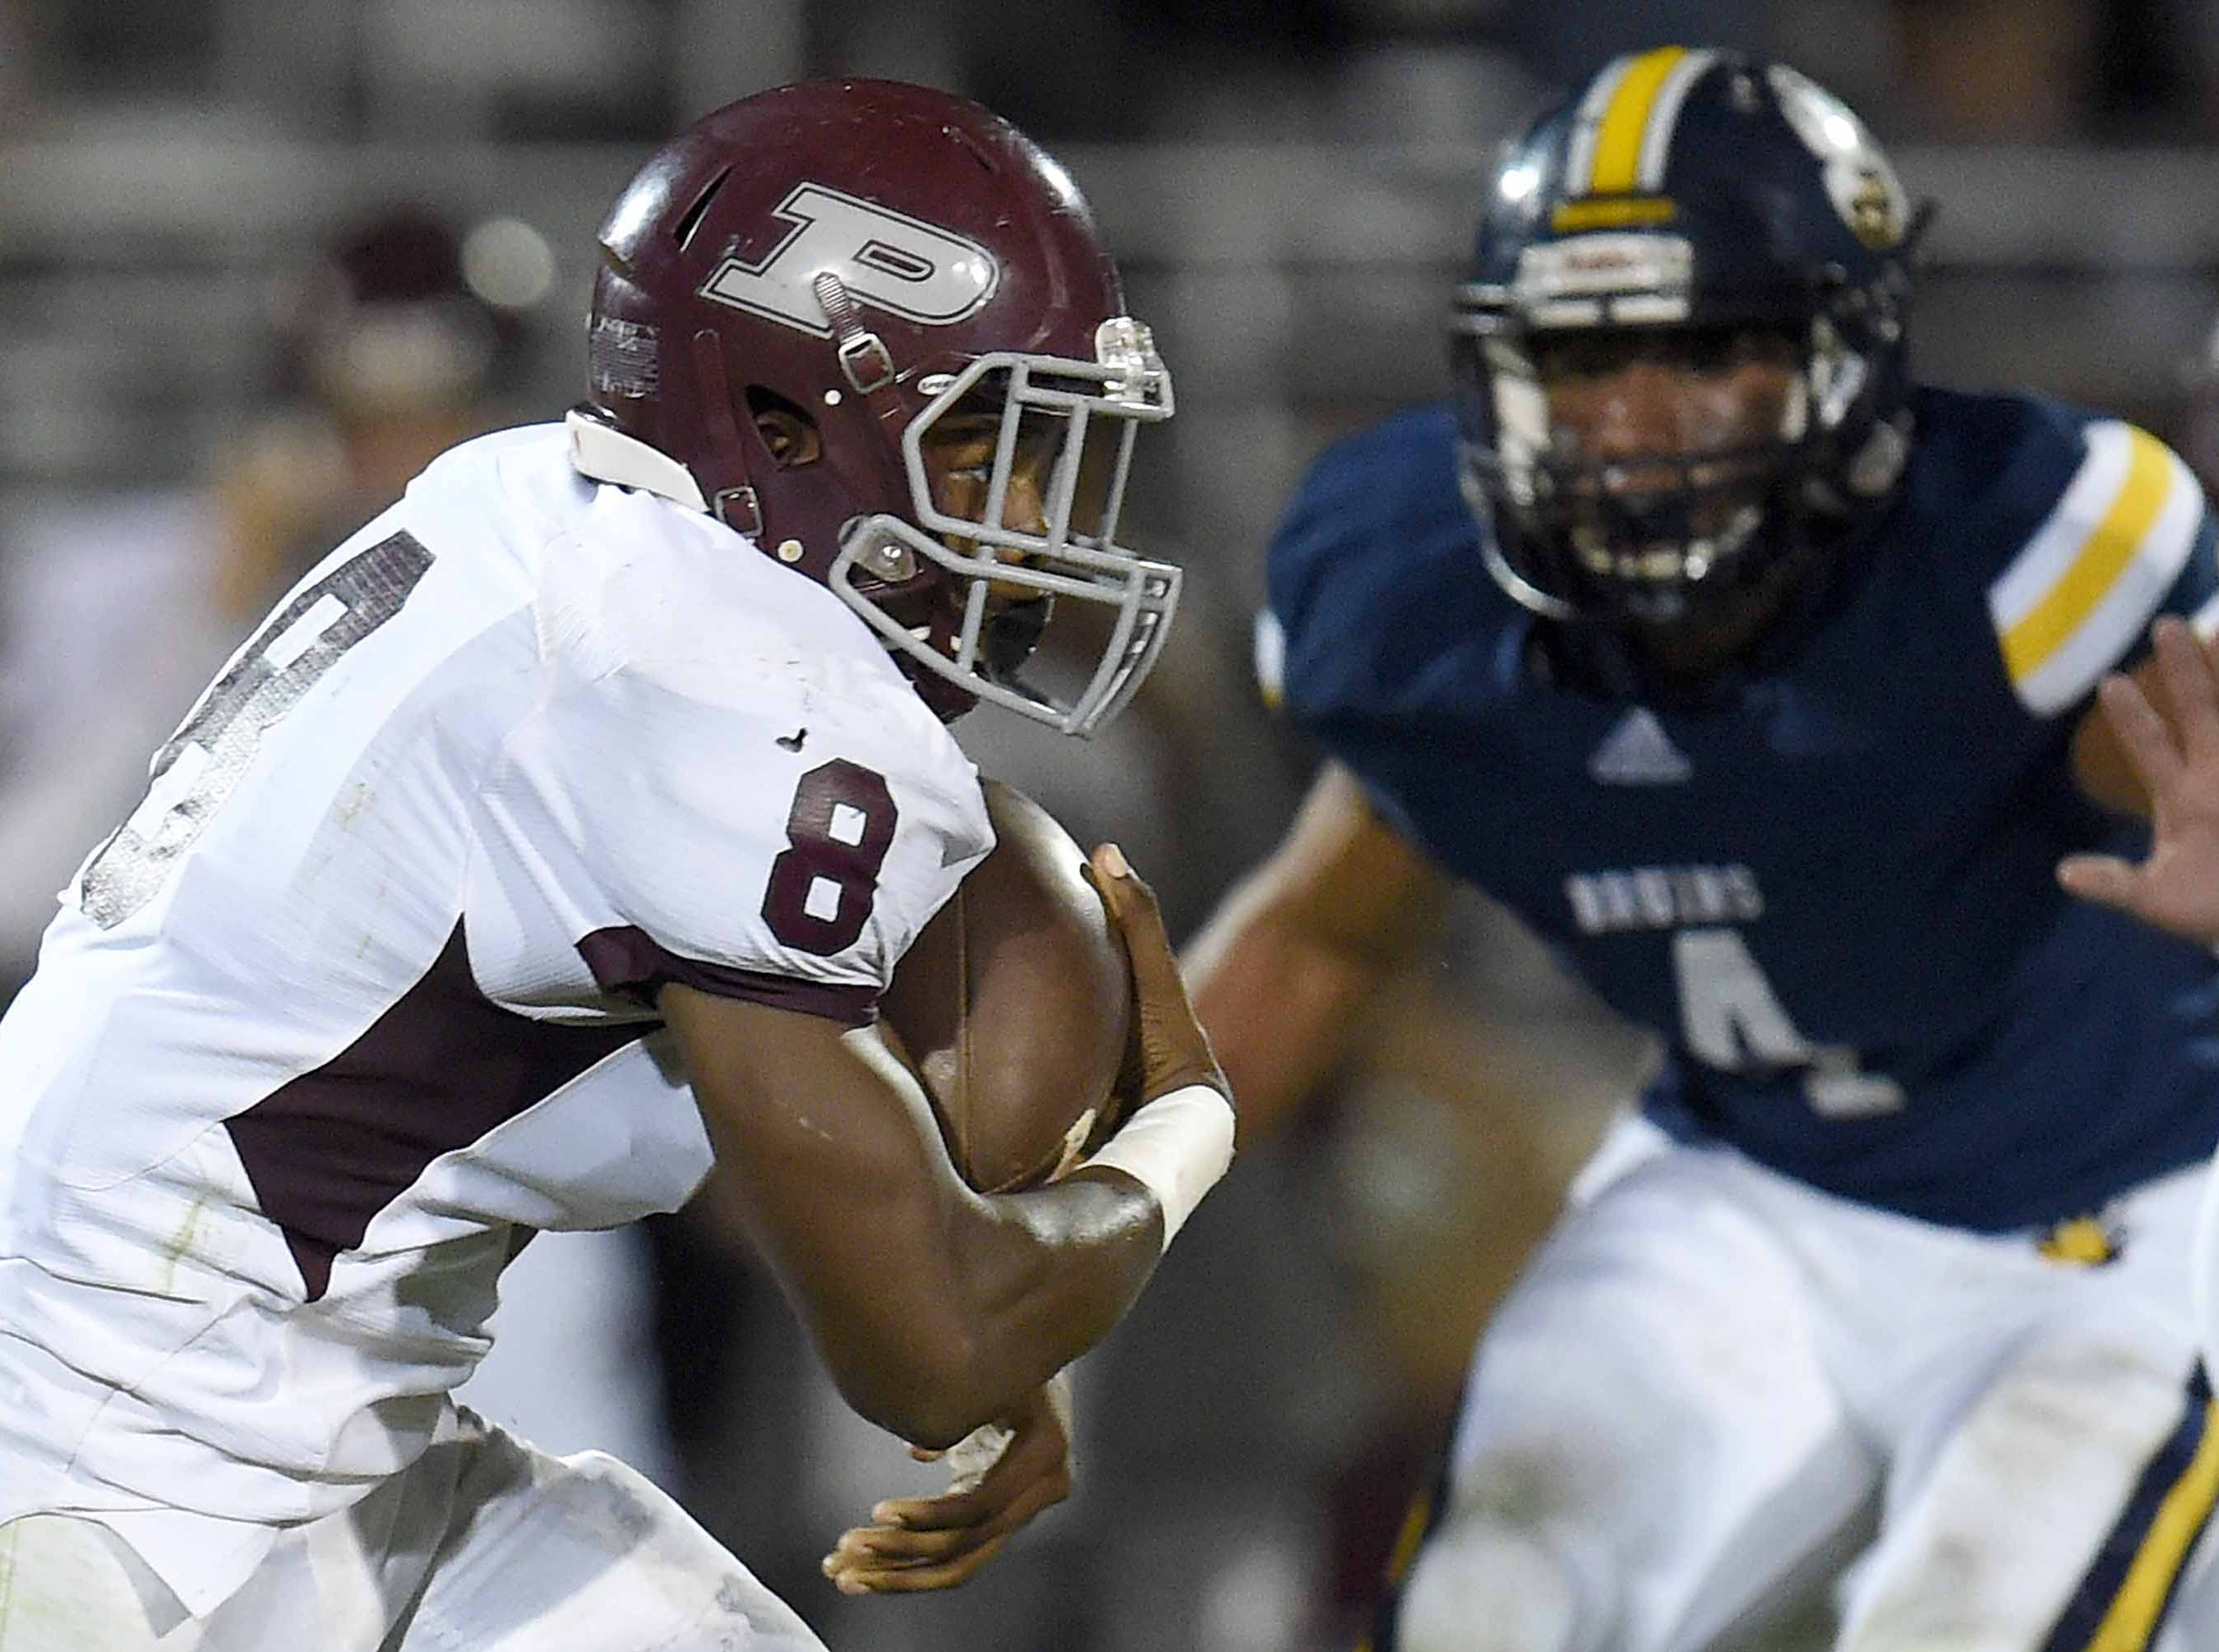 Puckett's Omar Easterling (8) tries to get by St. Joseph's Stephen Wolf (4) on Friday, October 19, 2018, at St. Joseph Catholic School in Madison, Miss.